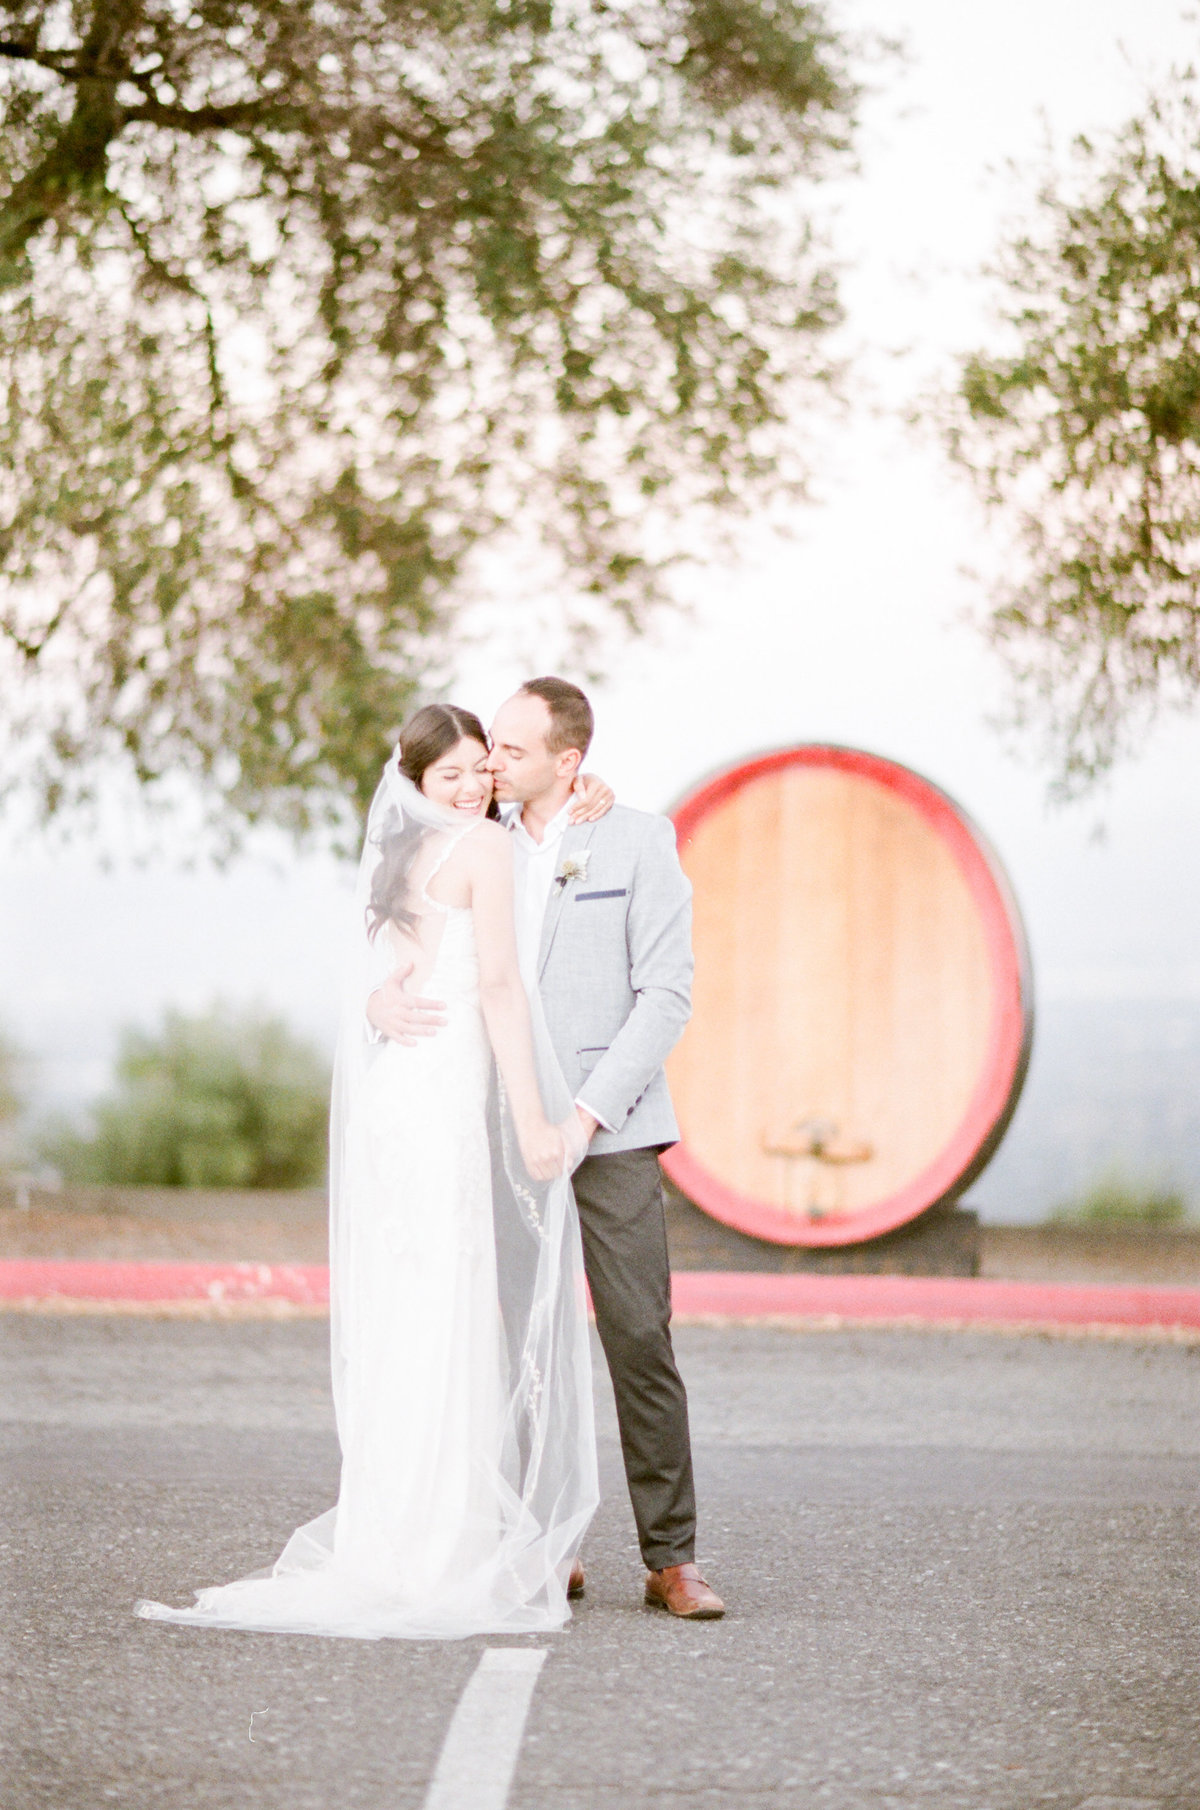 Mountain Winery Vineyard Wedding Venue